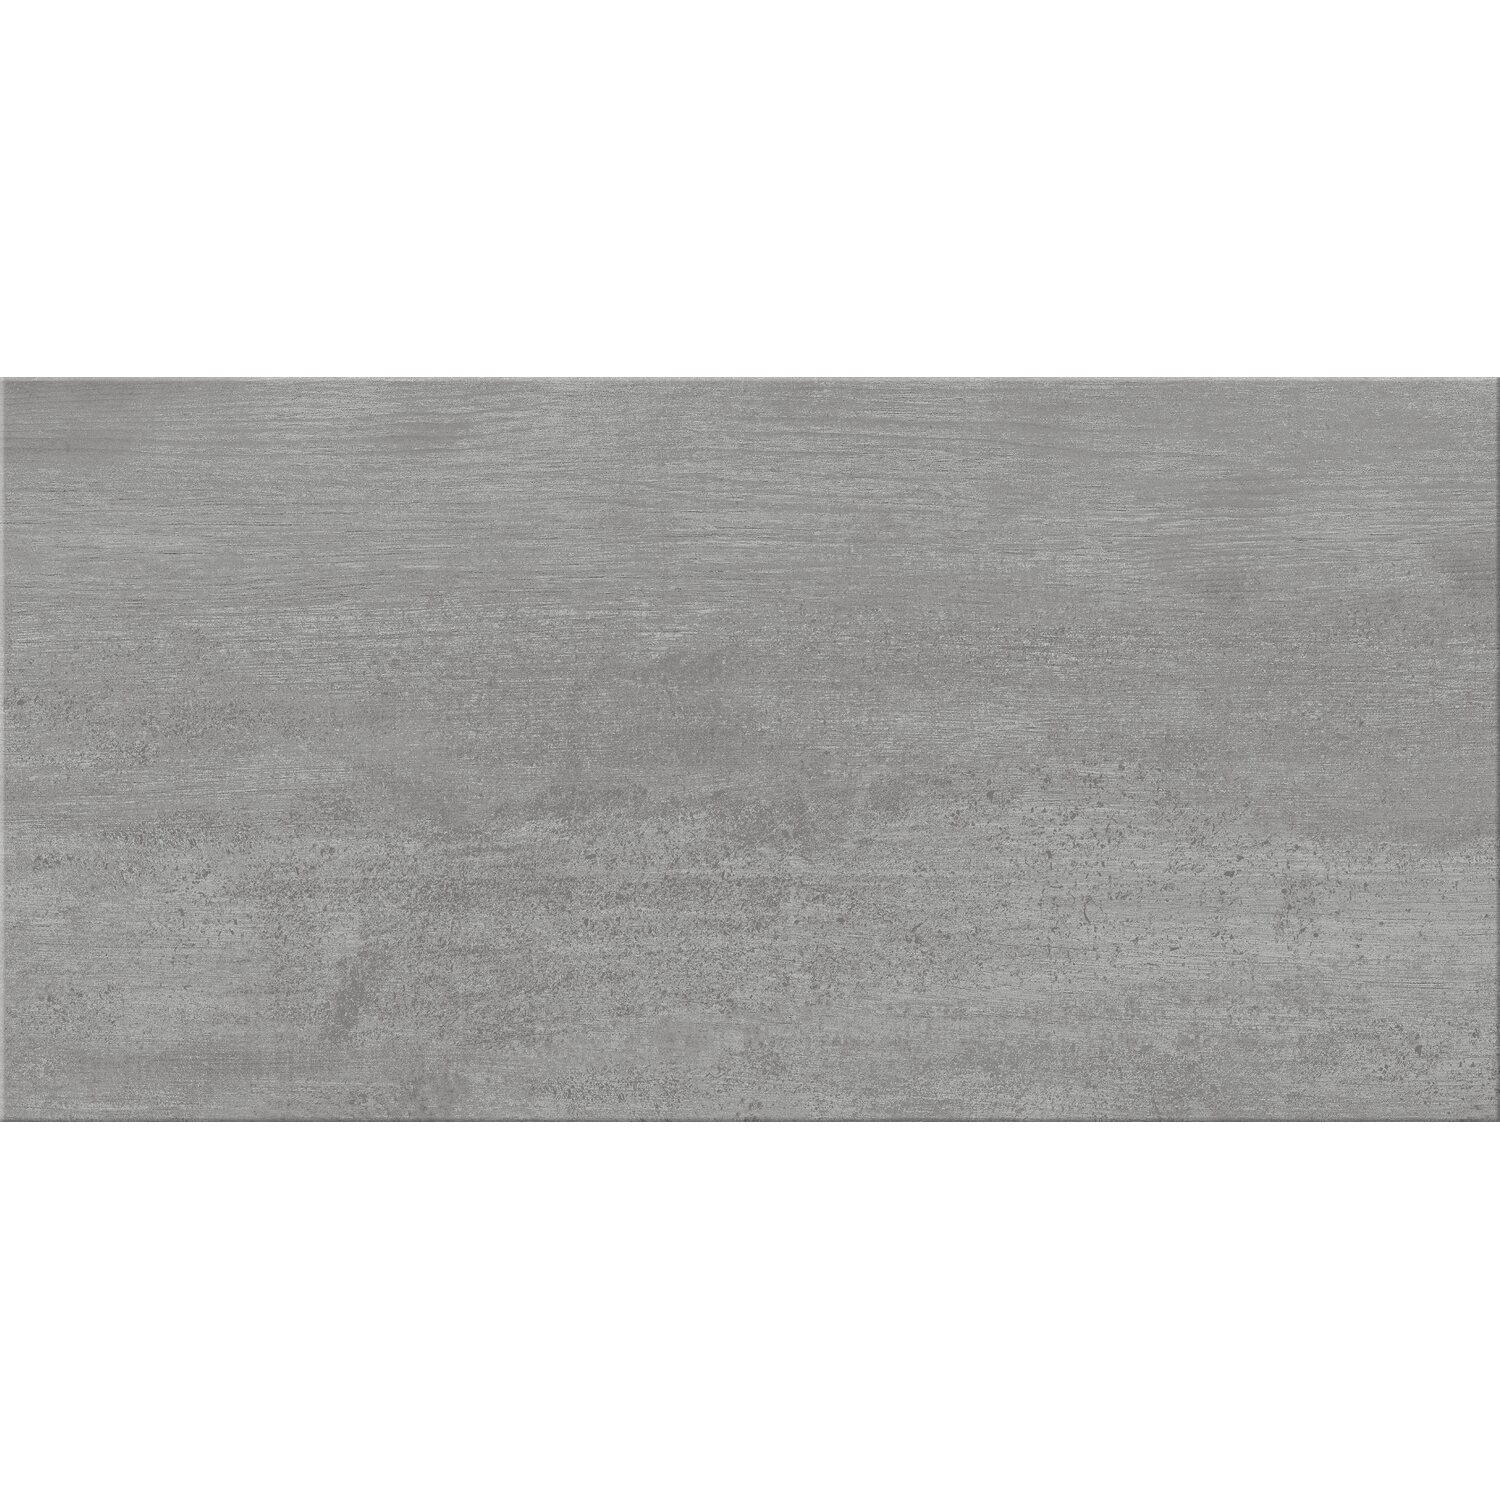 Beton Zement Optik Fliese Grau Feinsteinzeug Fliese Bodenfliese 30 x 60 cm